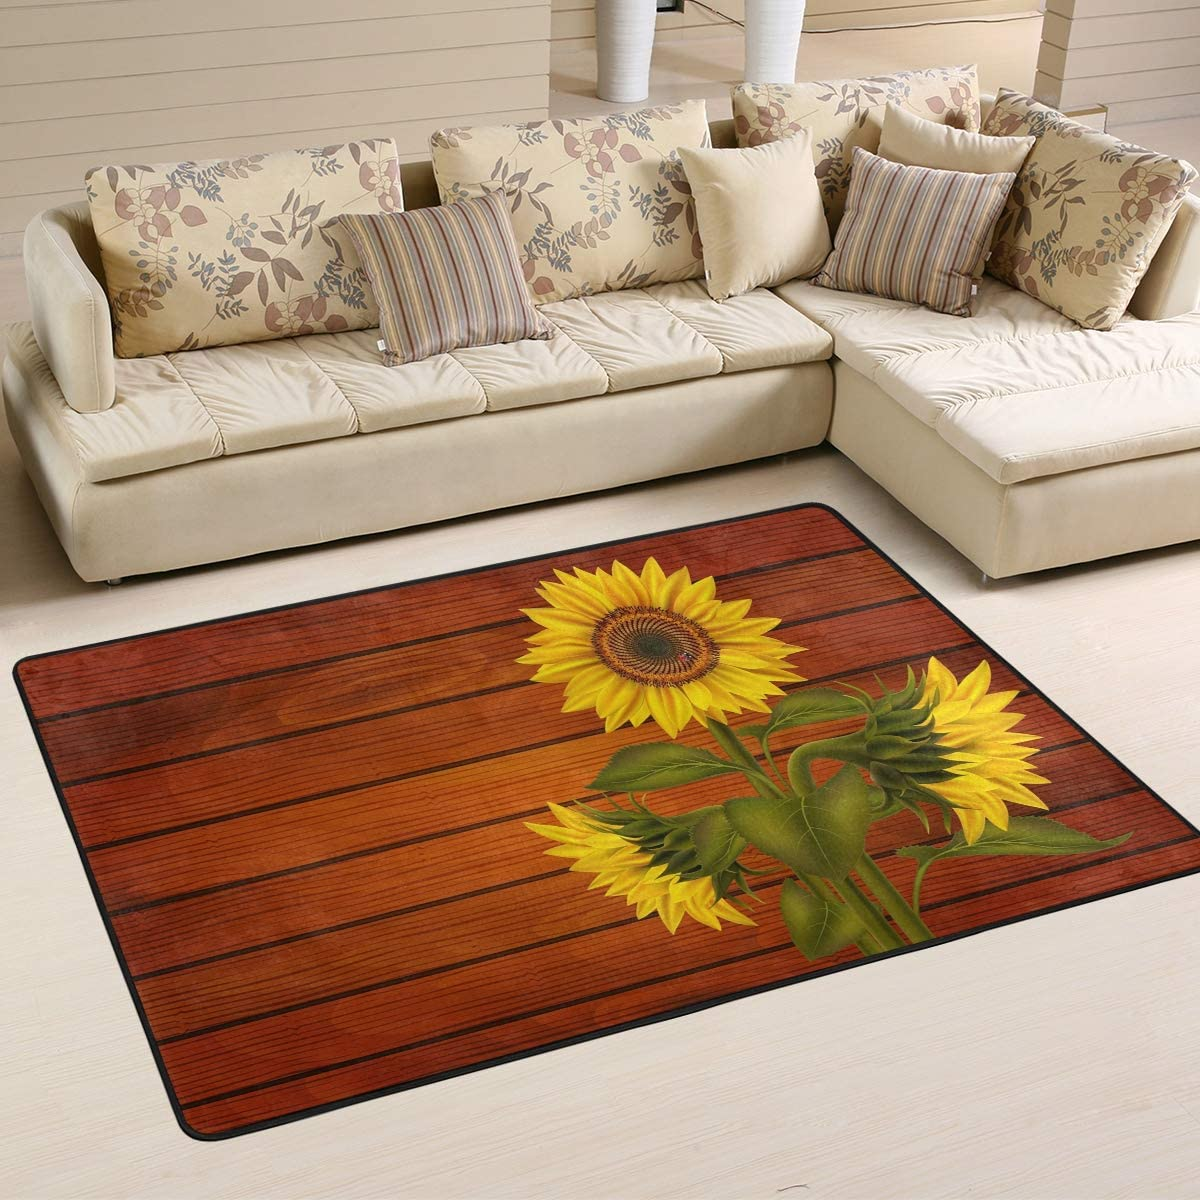 1.7  x 2.6 Vintage Wooden Sunflower Nursery Rug Floor Carpet Yoga Mat Naanle Sunflower Non Slip Area Rug for Living Dinning Room Bedroom Kitchen 20 x 31 Inches // 50 x 80 cm